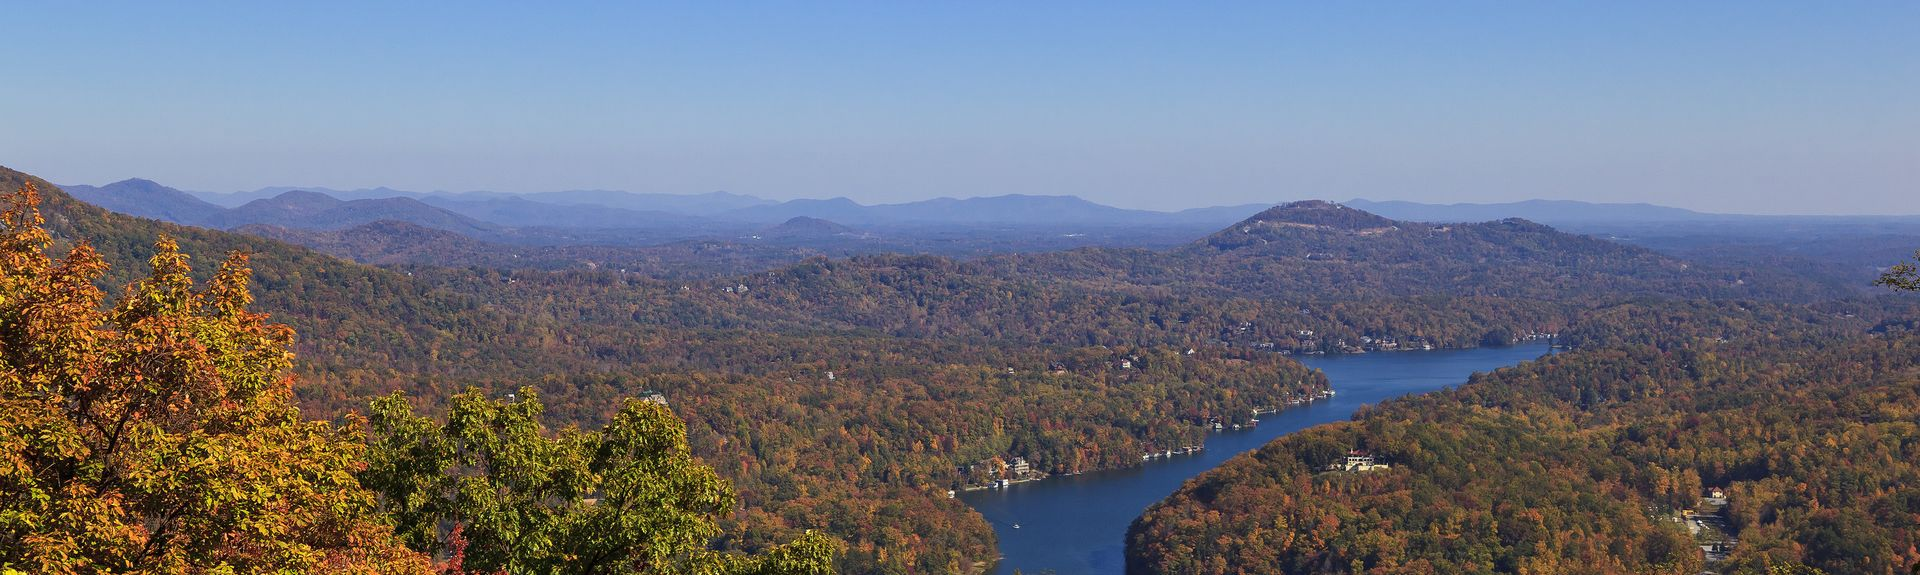 Lake Lure, North Carolina, Verenigde Staten